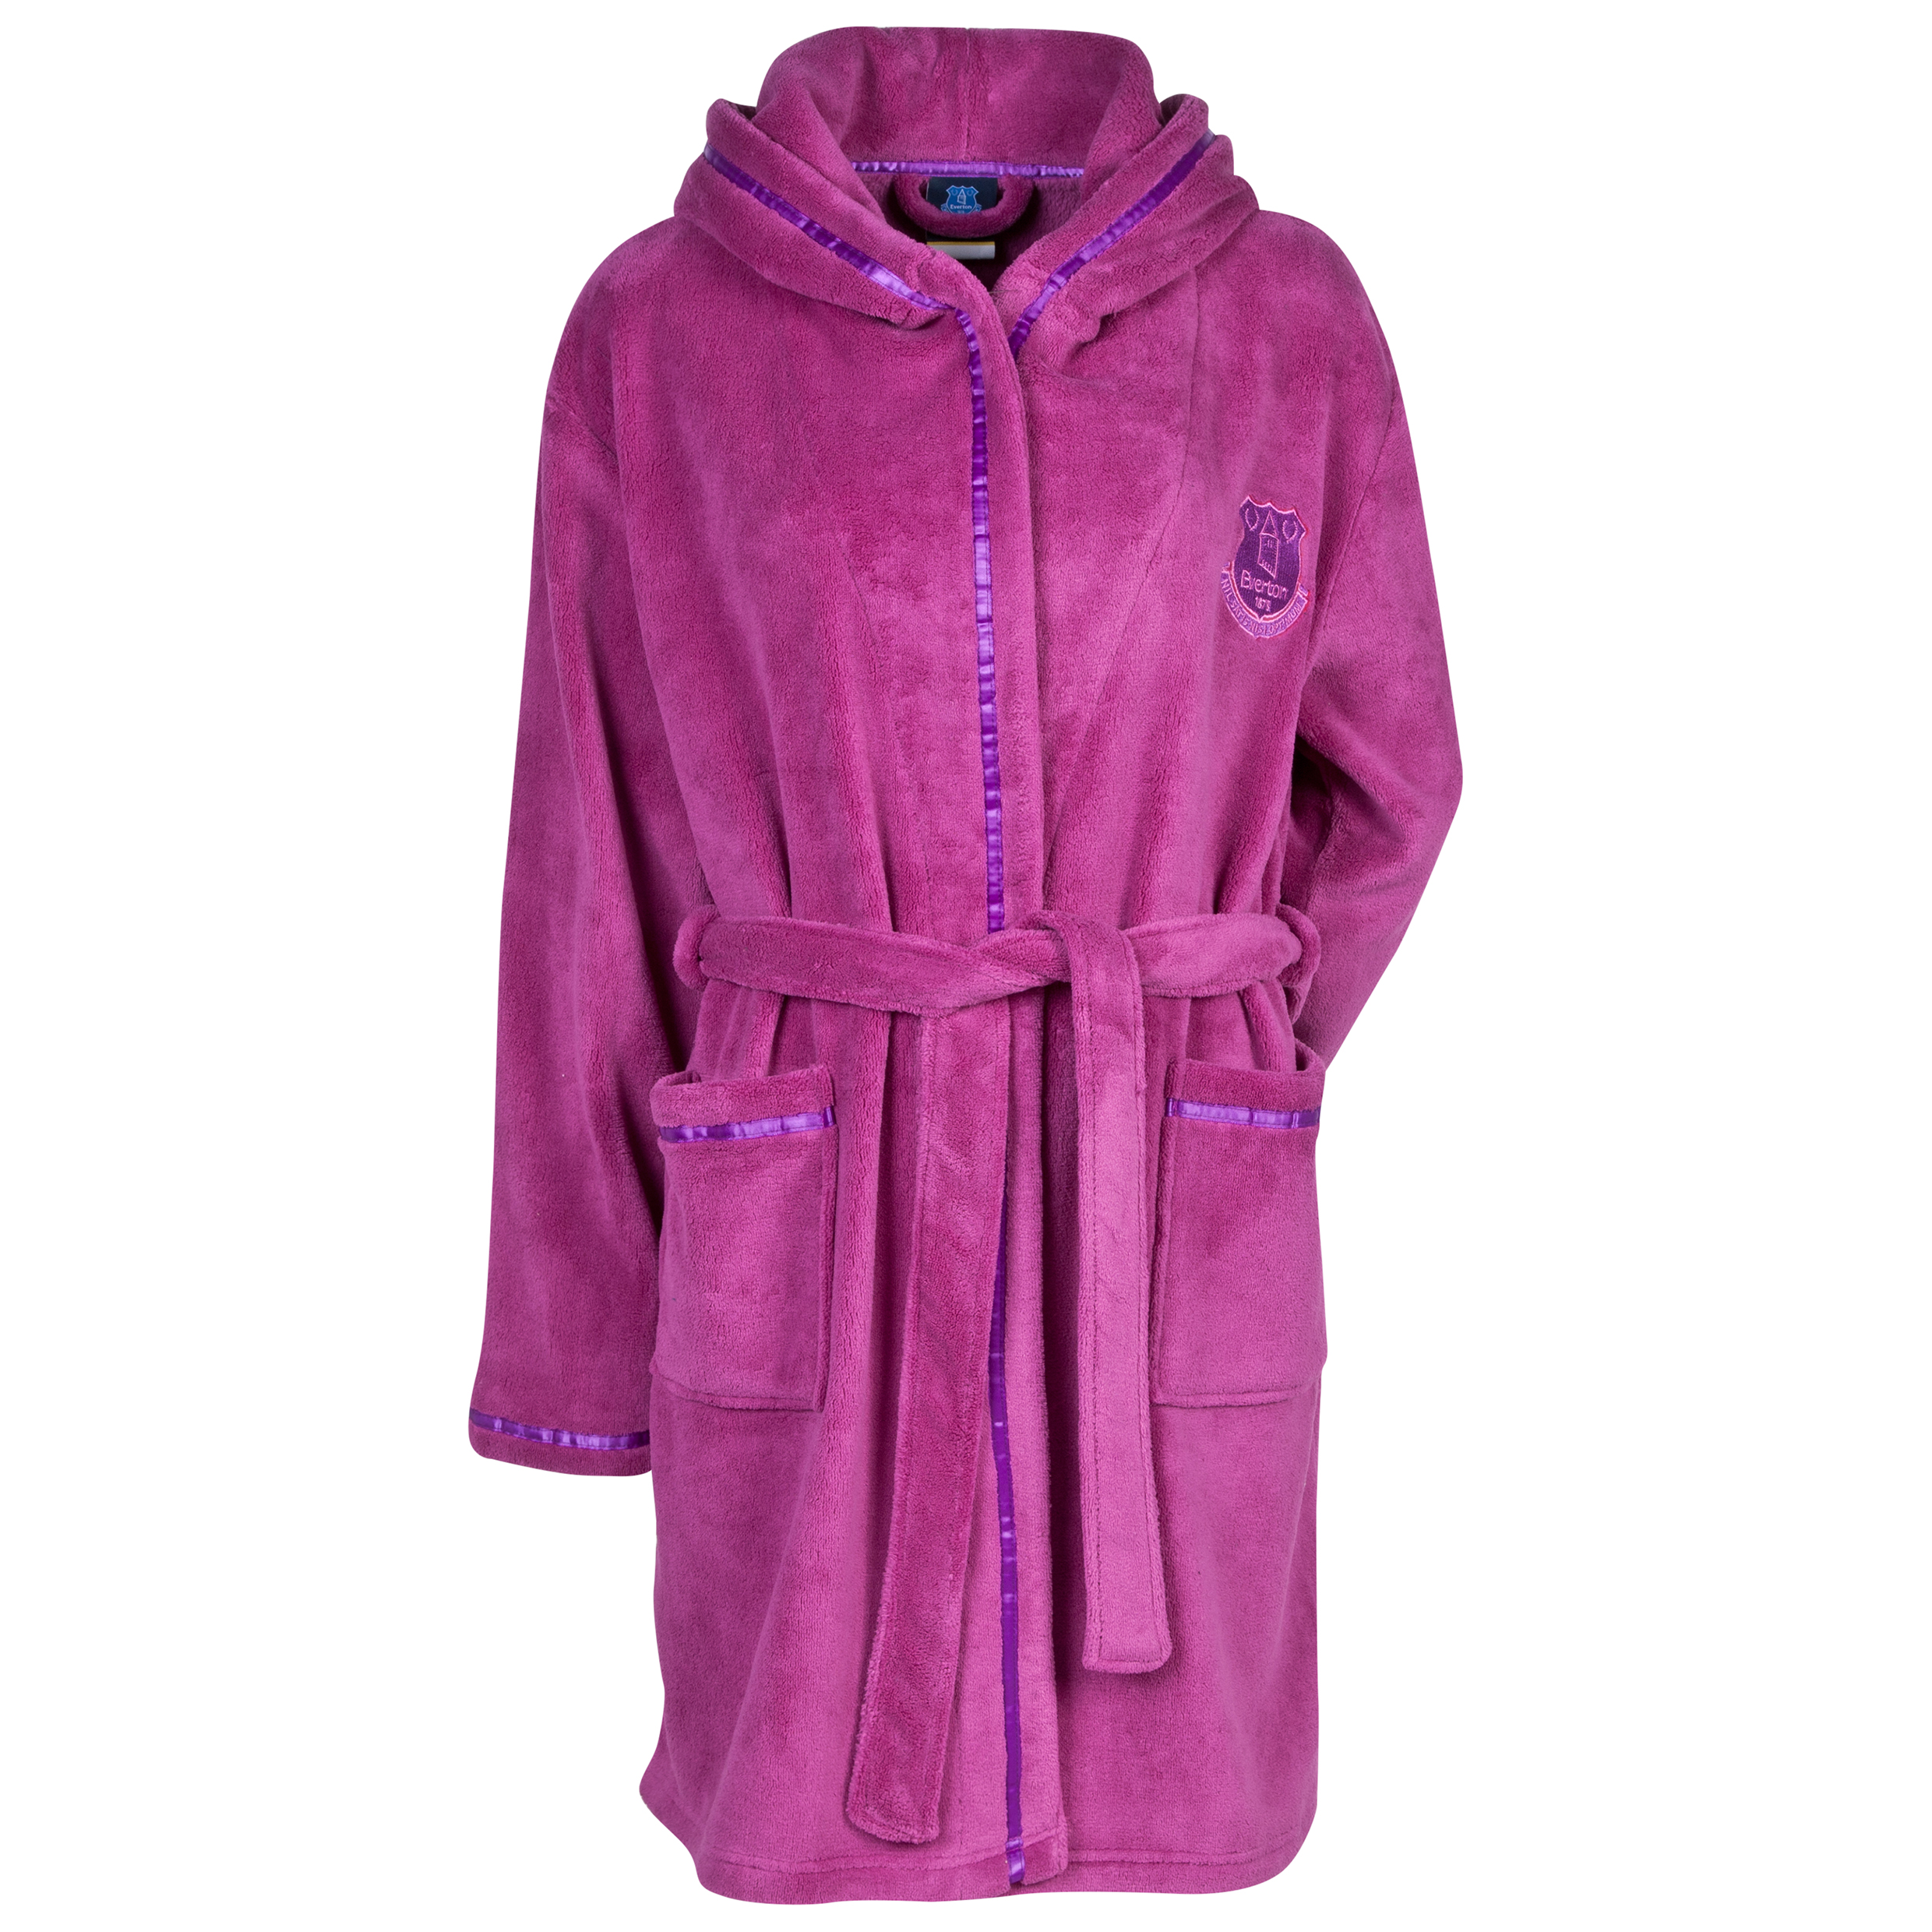 Everton Robe - Magenta Pink - Womens